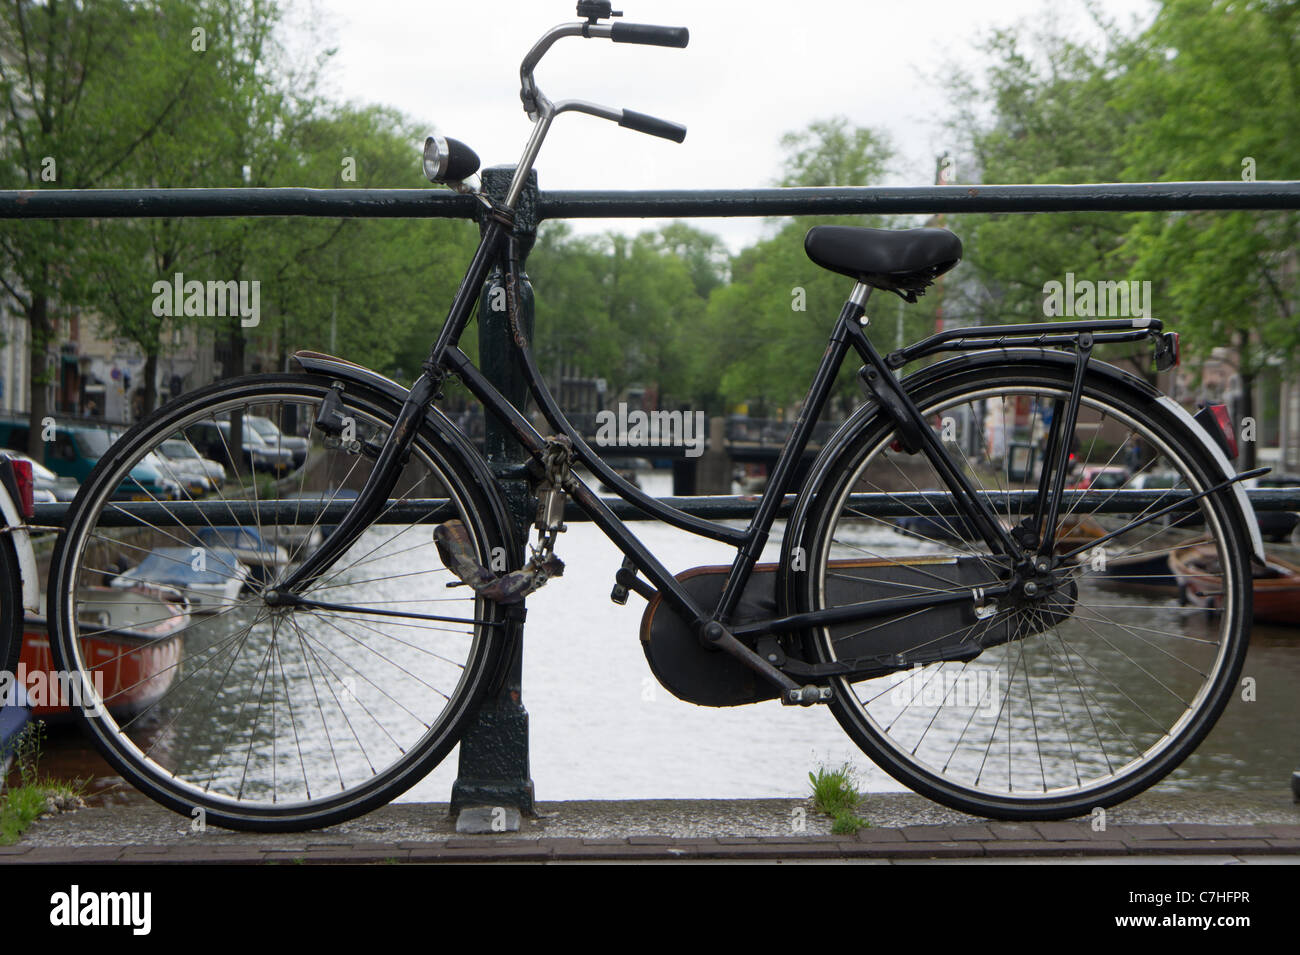 Old bicycle chained to bridge over a canal in Amsterdam, Holland Stock Photo